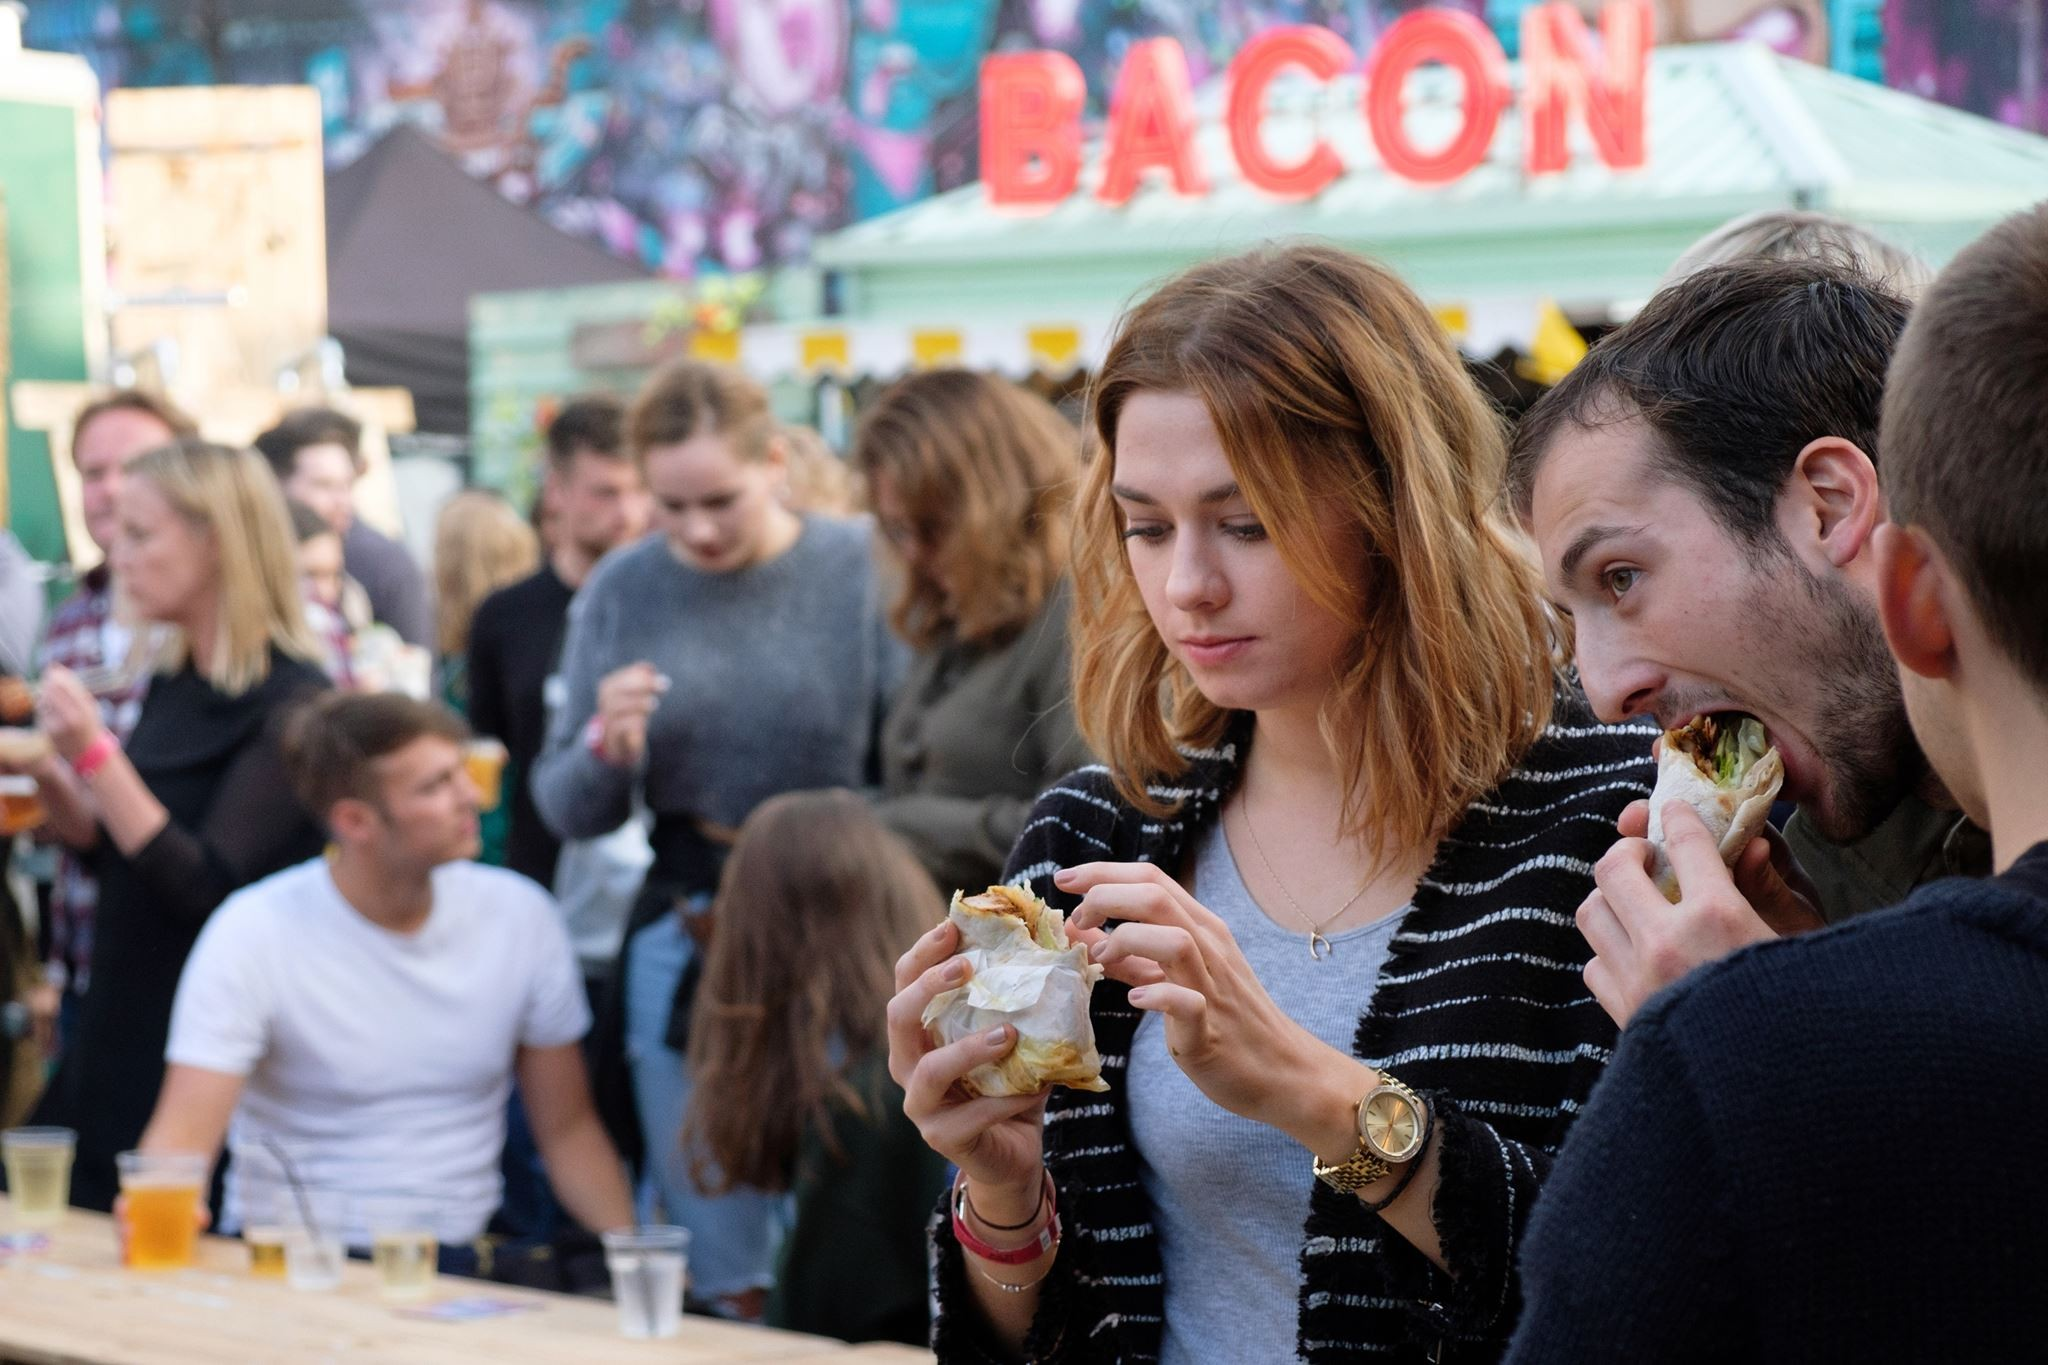 The First European Street Food Awards: 30 Settembre Live @ Bite Club di Berlino